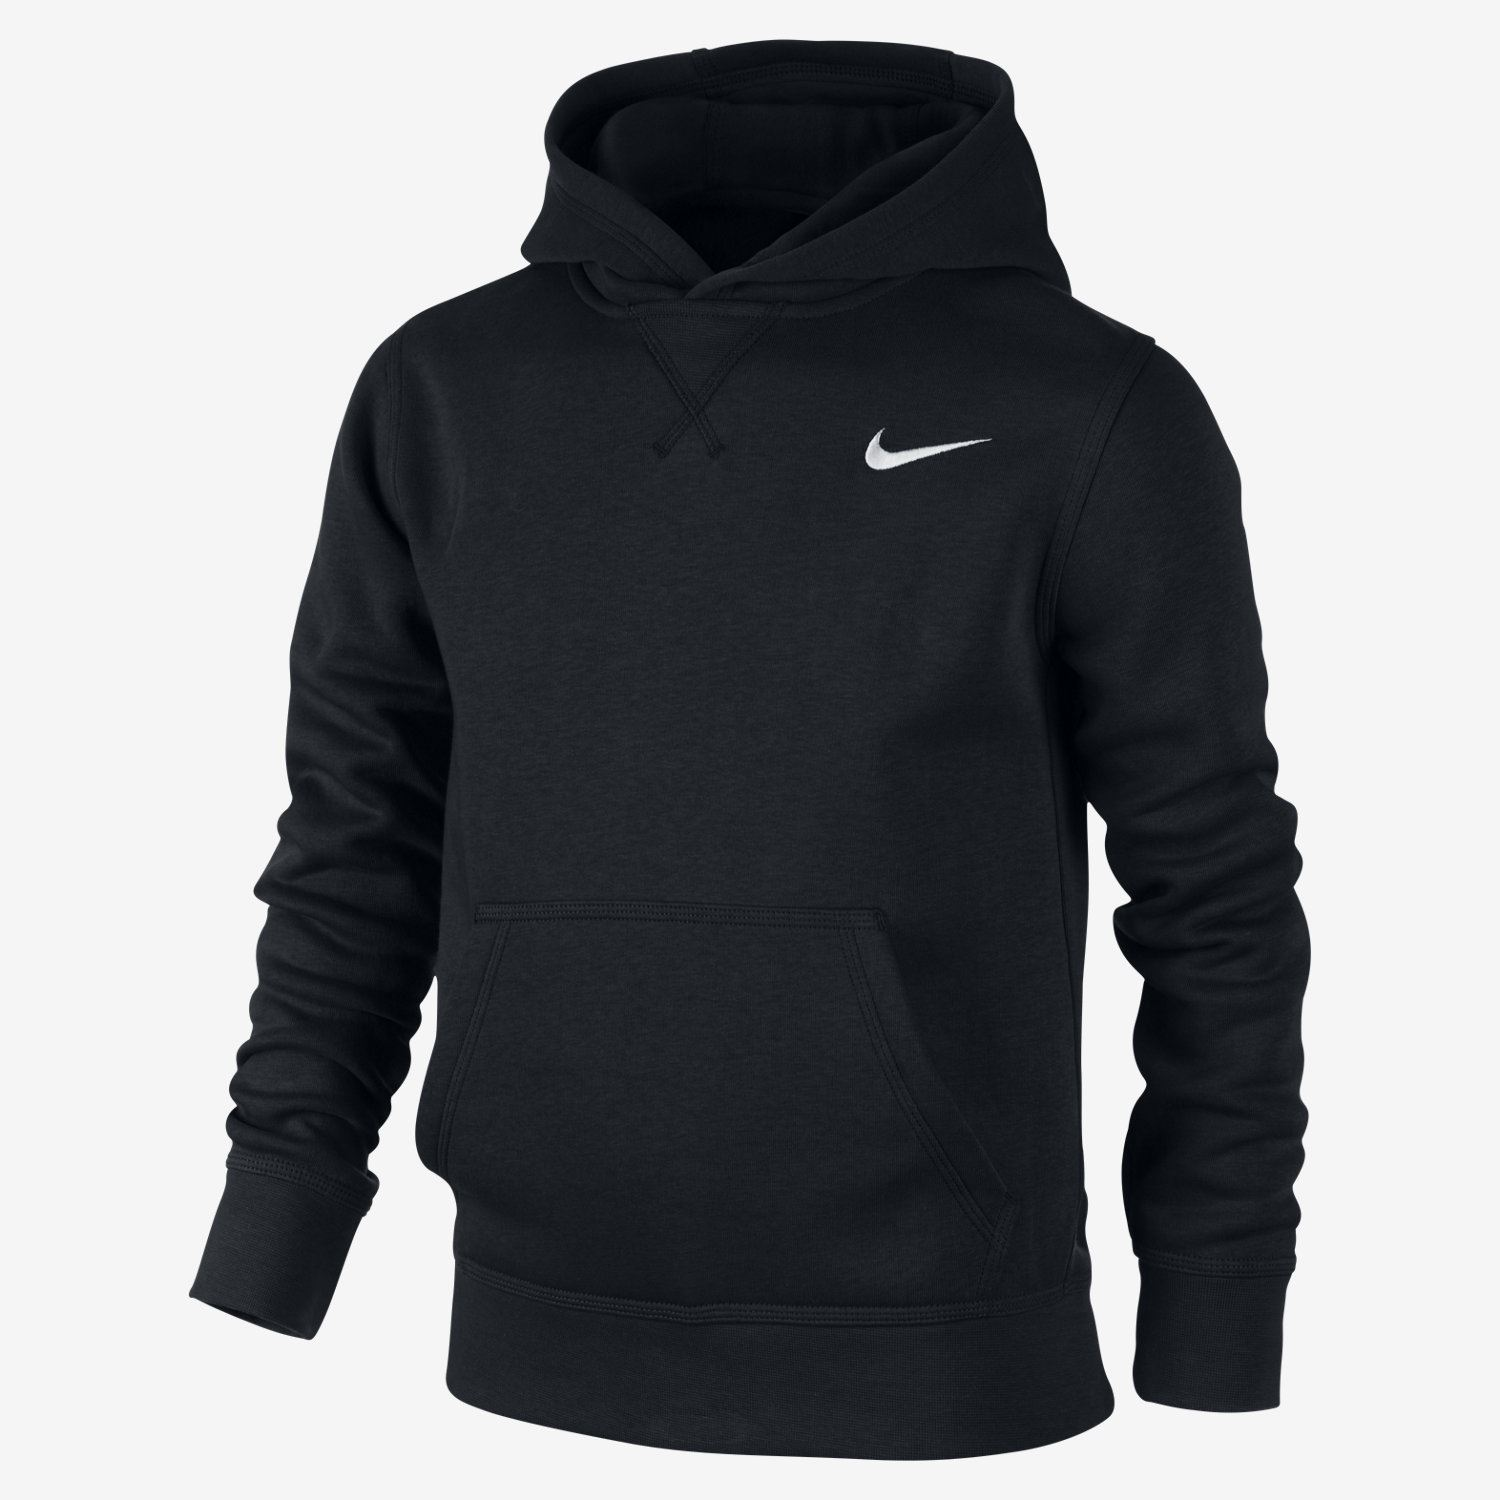 Free shipping on boys' apparel at obmenvisitami.tk Shop hoodies, shirts, pants, T-shirts & more from the best brands. Totally free shipping & returns.